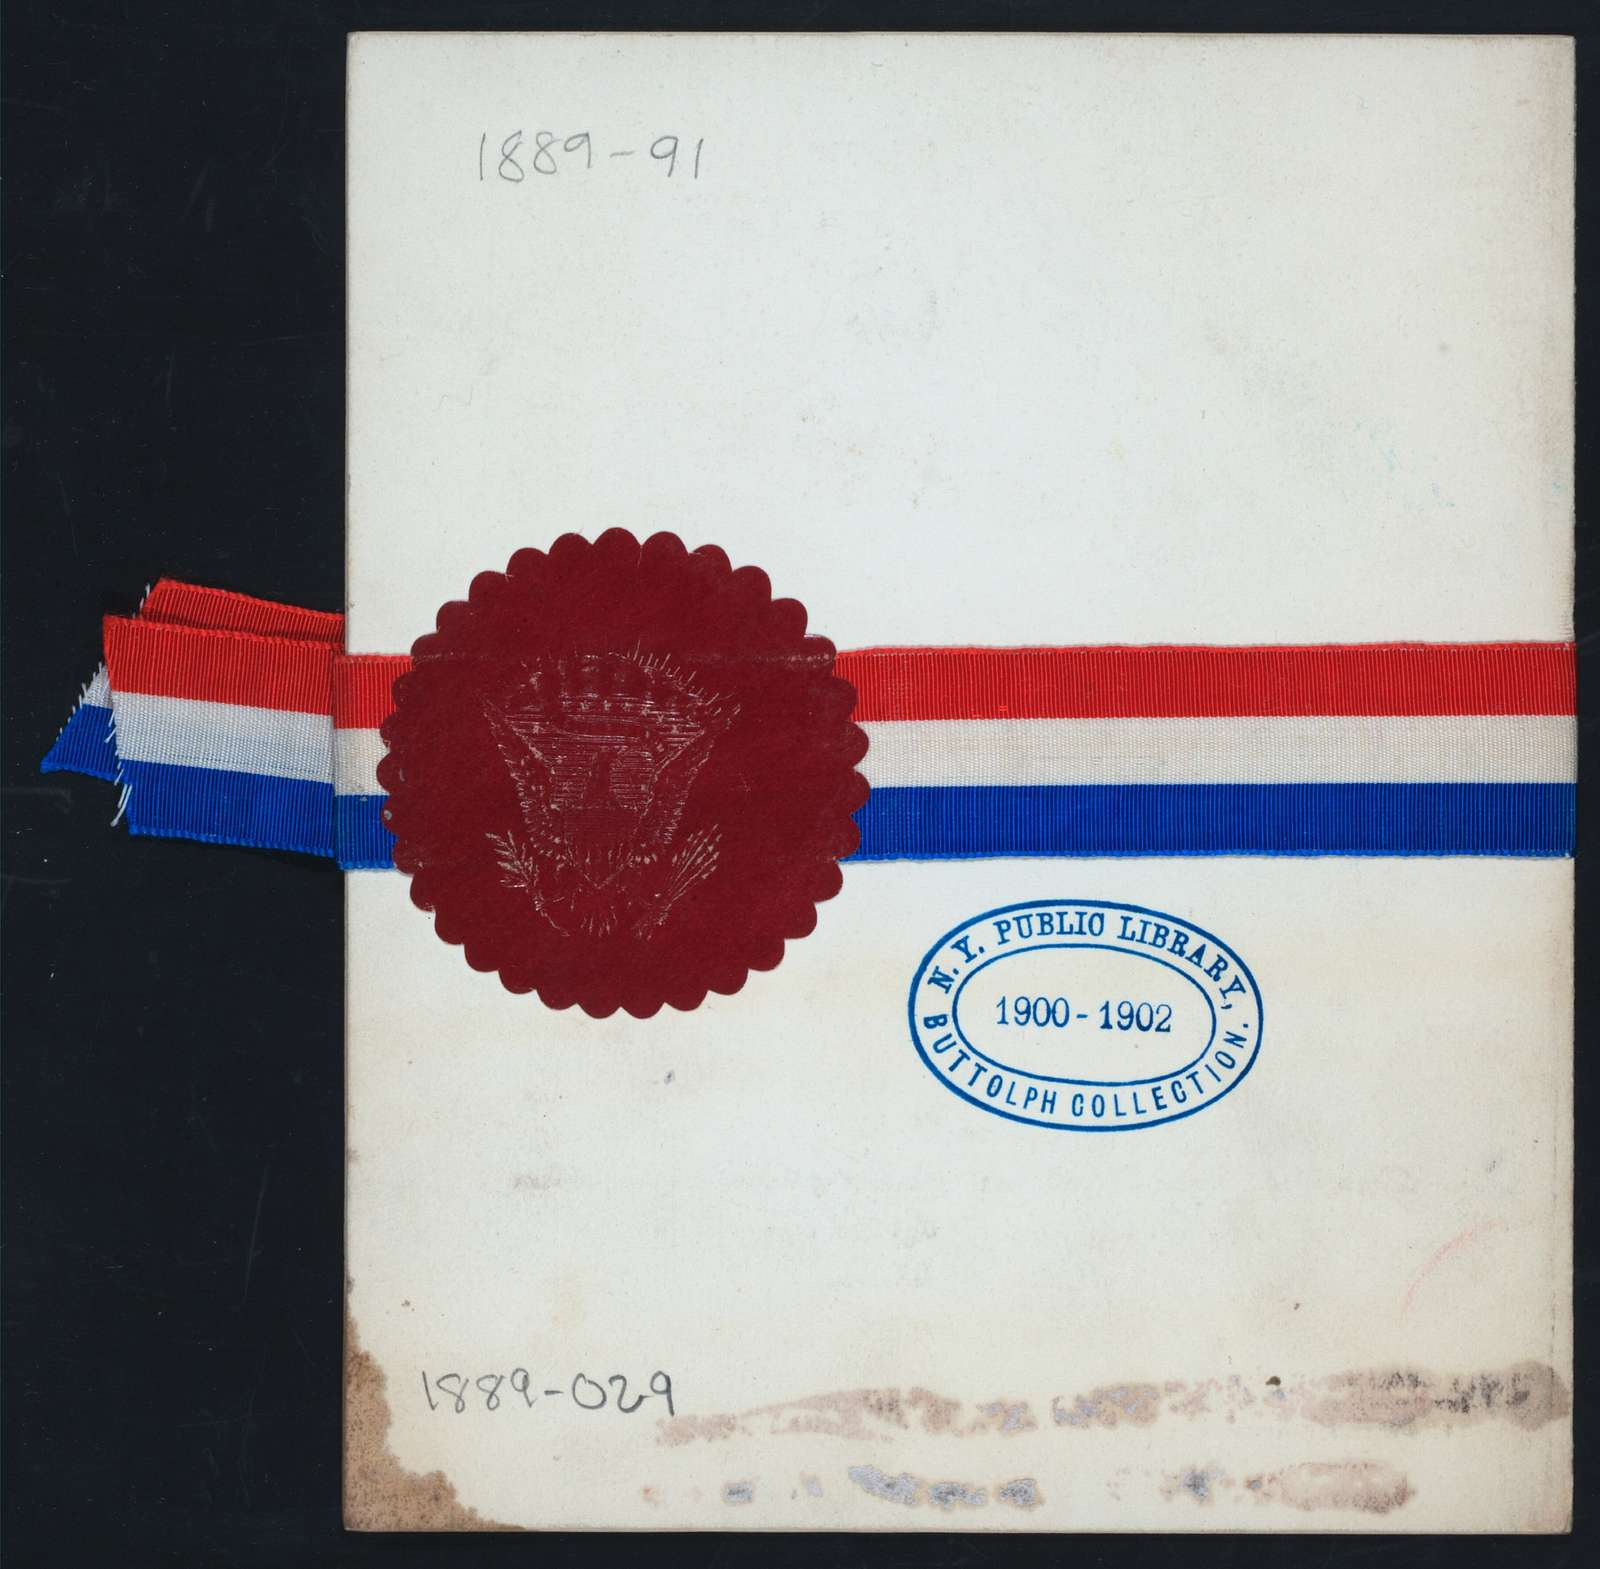 """BANQUET AND INAUGURAL BALL FOR PRESIDENT BENJAMIN HARRISON AND VICE-PRESIDENT LEVI MORTON [held by] [UNITED STATES GOVERNMENT?] [at] """"[PHILADELPHIA, PA?]"""""""